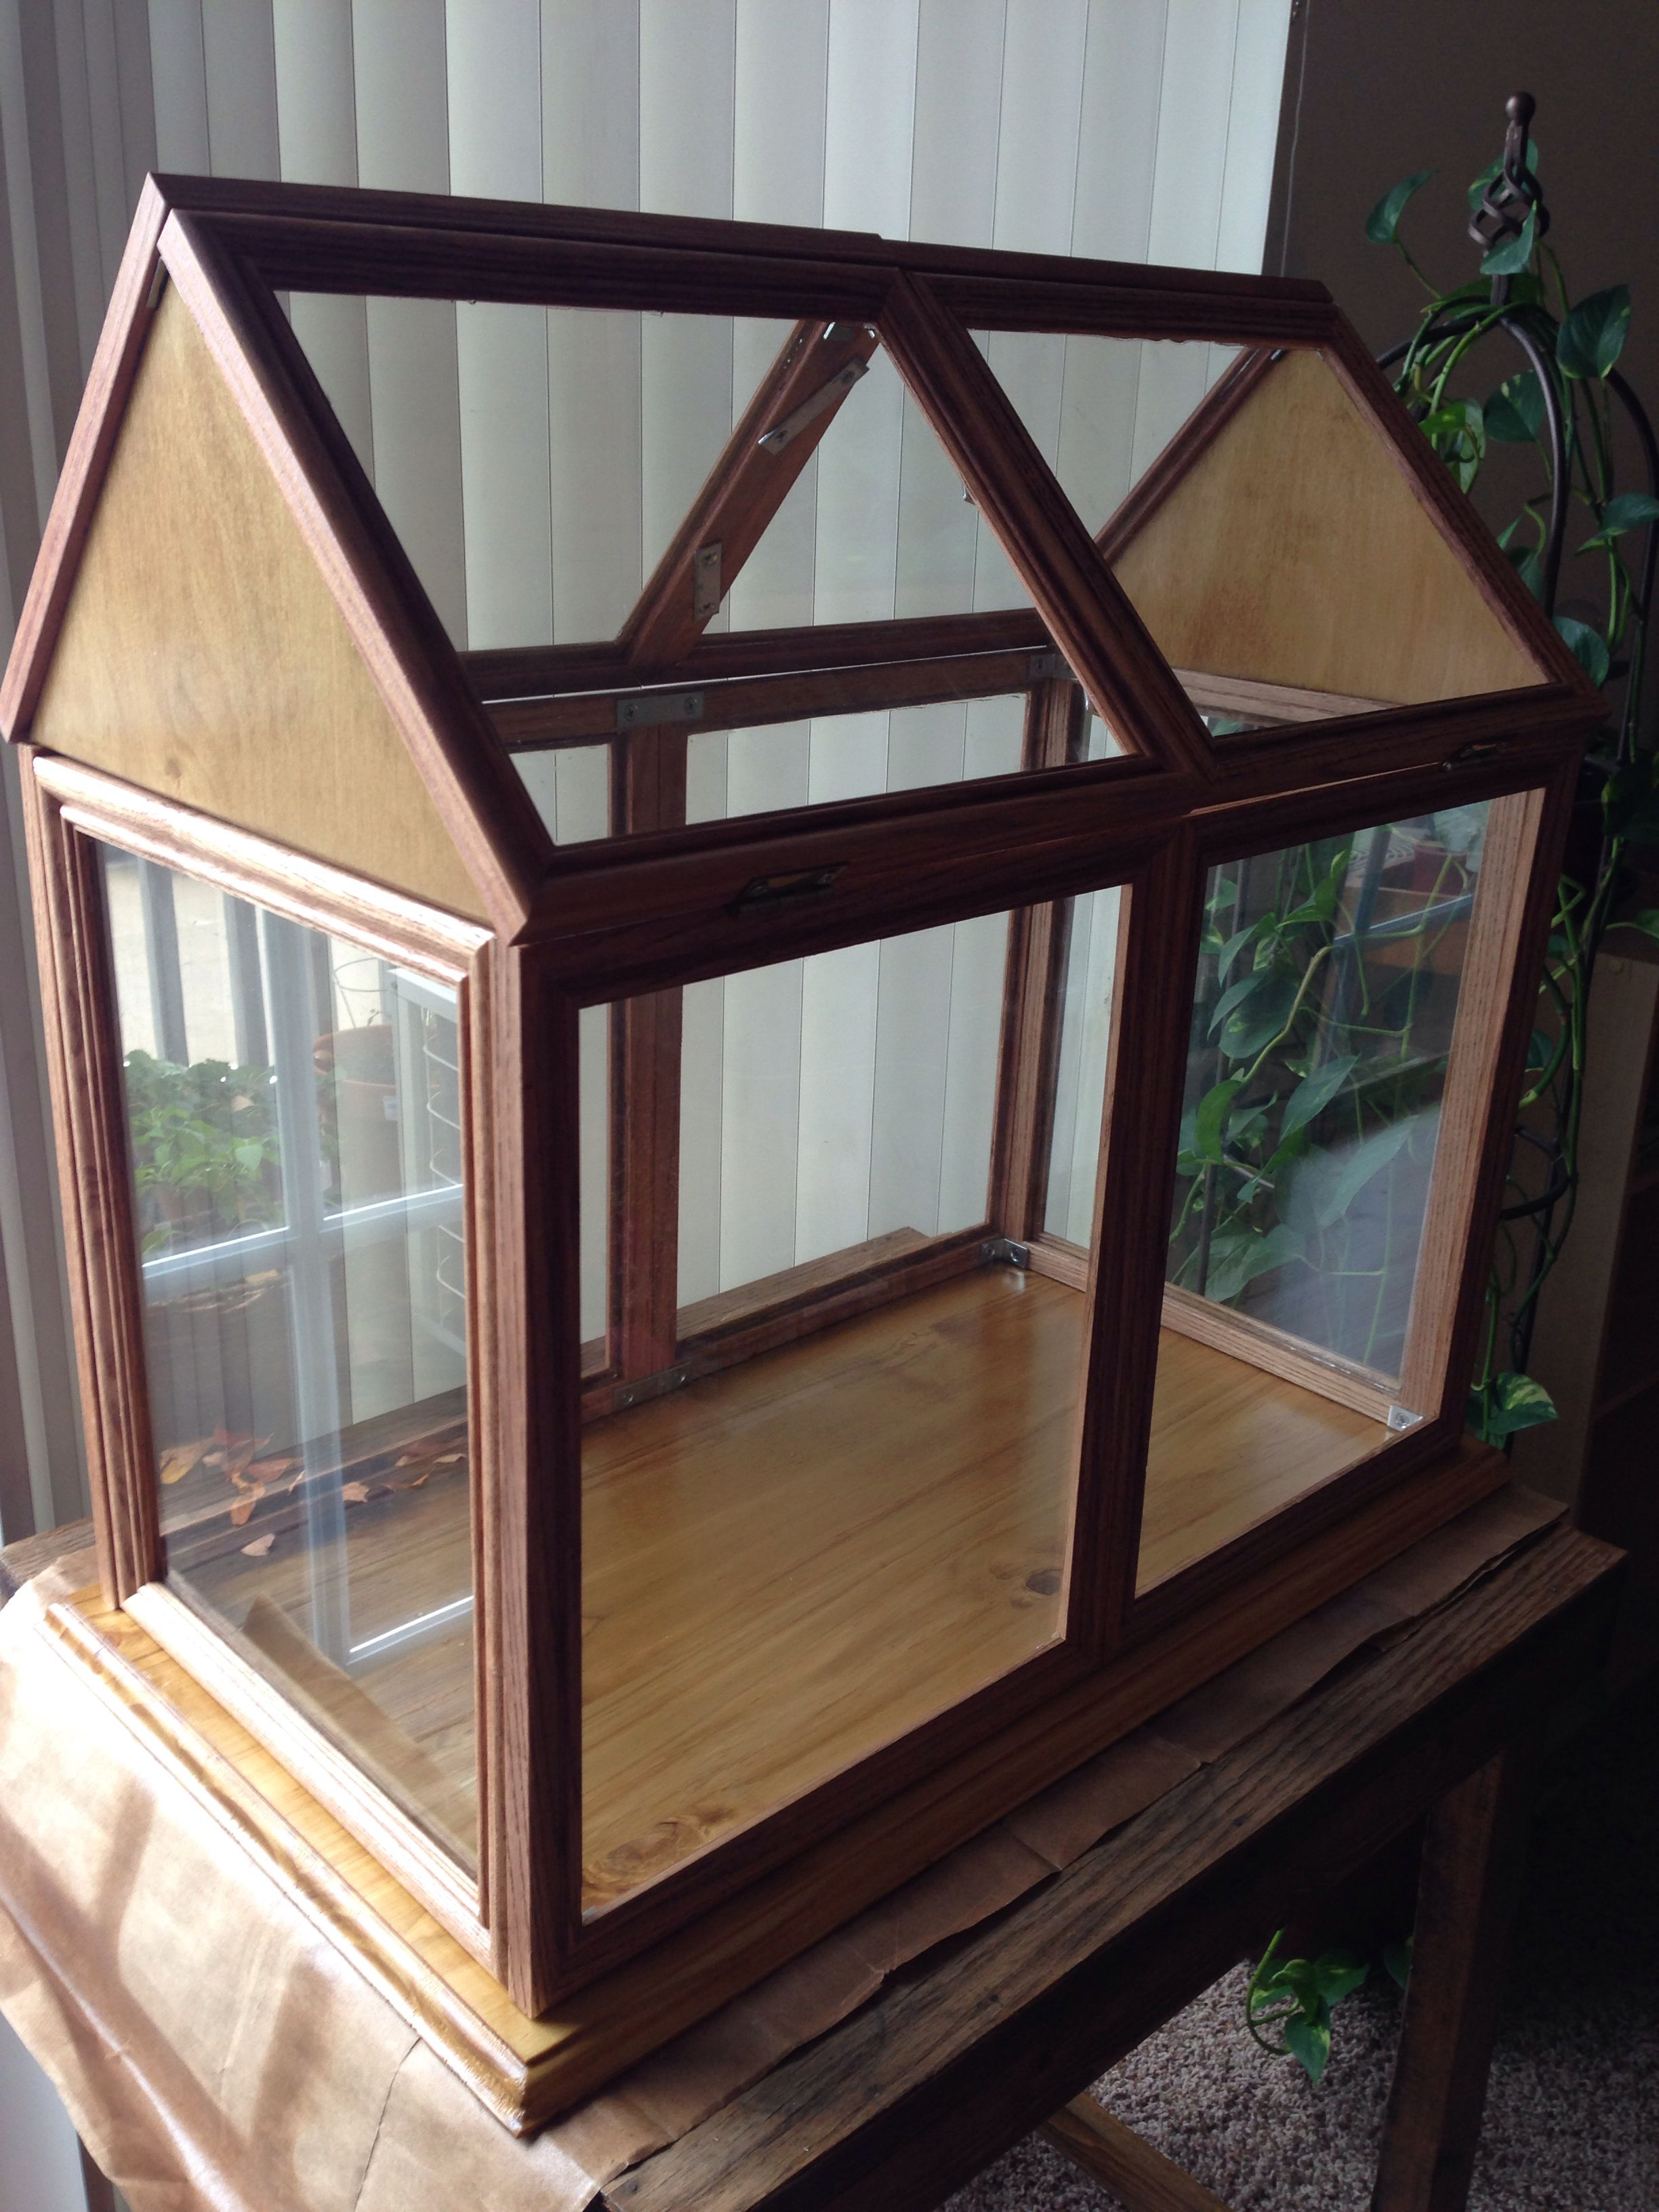 My Dad And I Built A Tabletop Greenhouse Out Of Picture Frames! Iu0027m